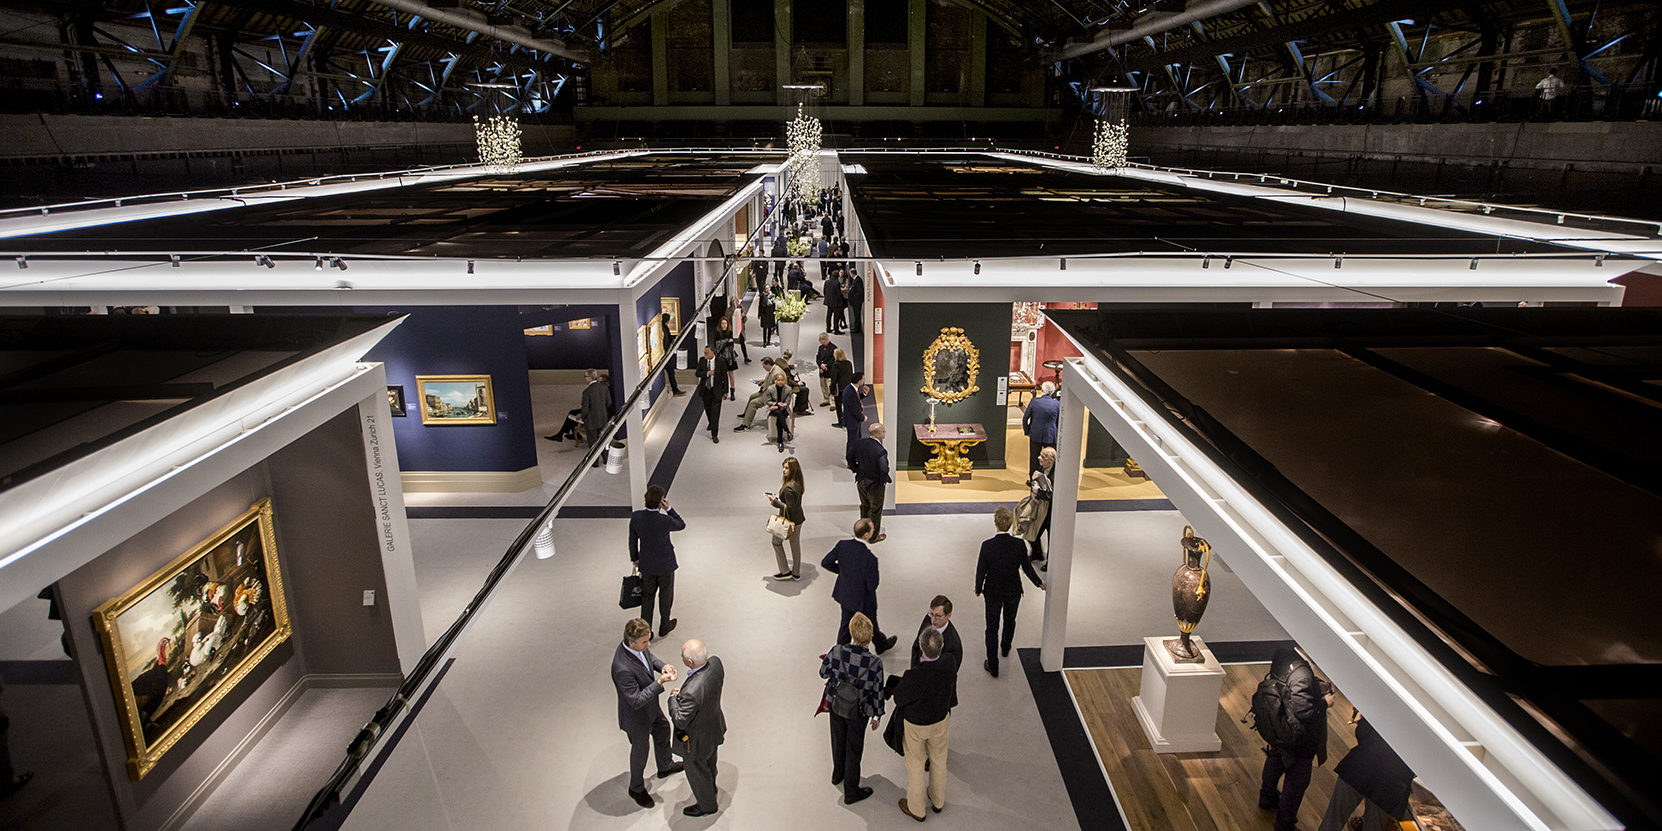 TEFAF annuncia nuove nomine